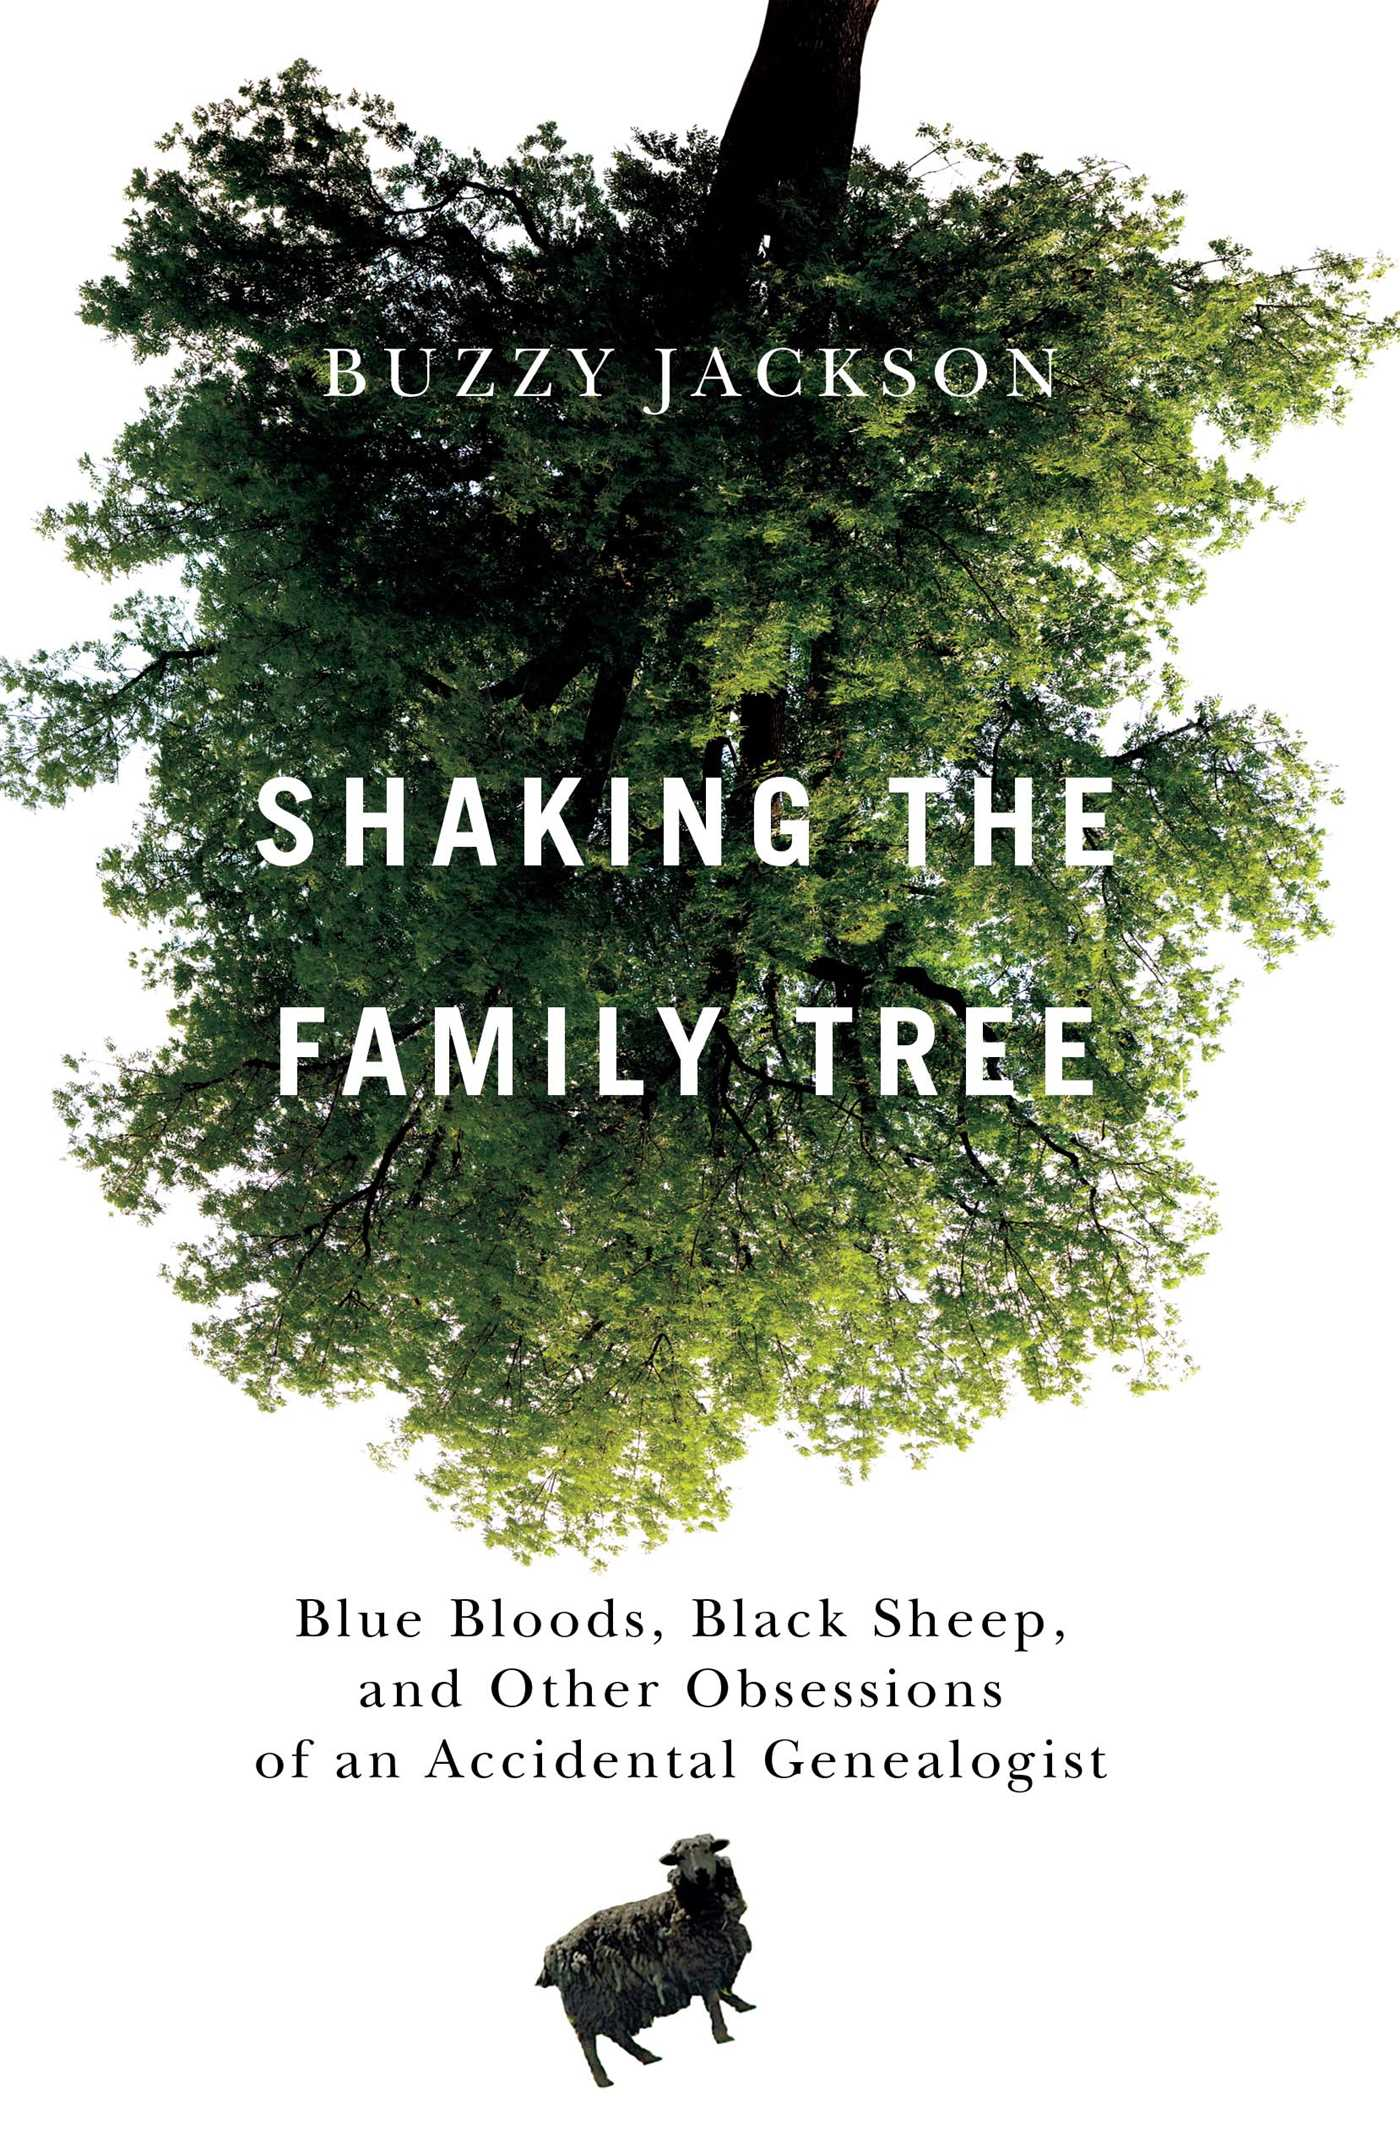 Shaking the family tree 9781439149263 hr